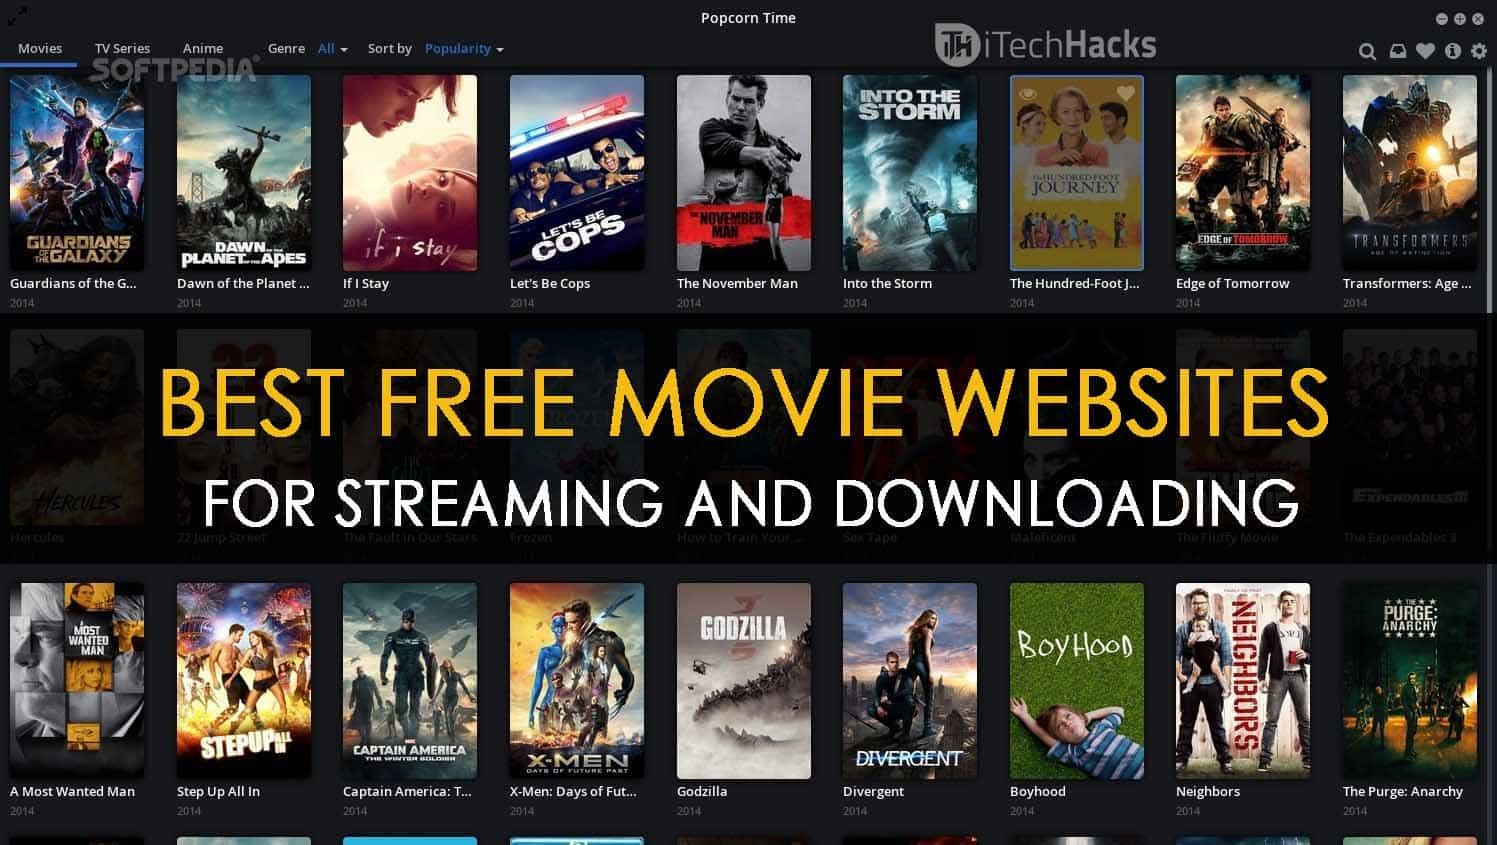 0 10 movies wiring diagram for spotlights on a car top 25 43 best movie streaming and downloading websites 2019